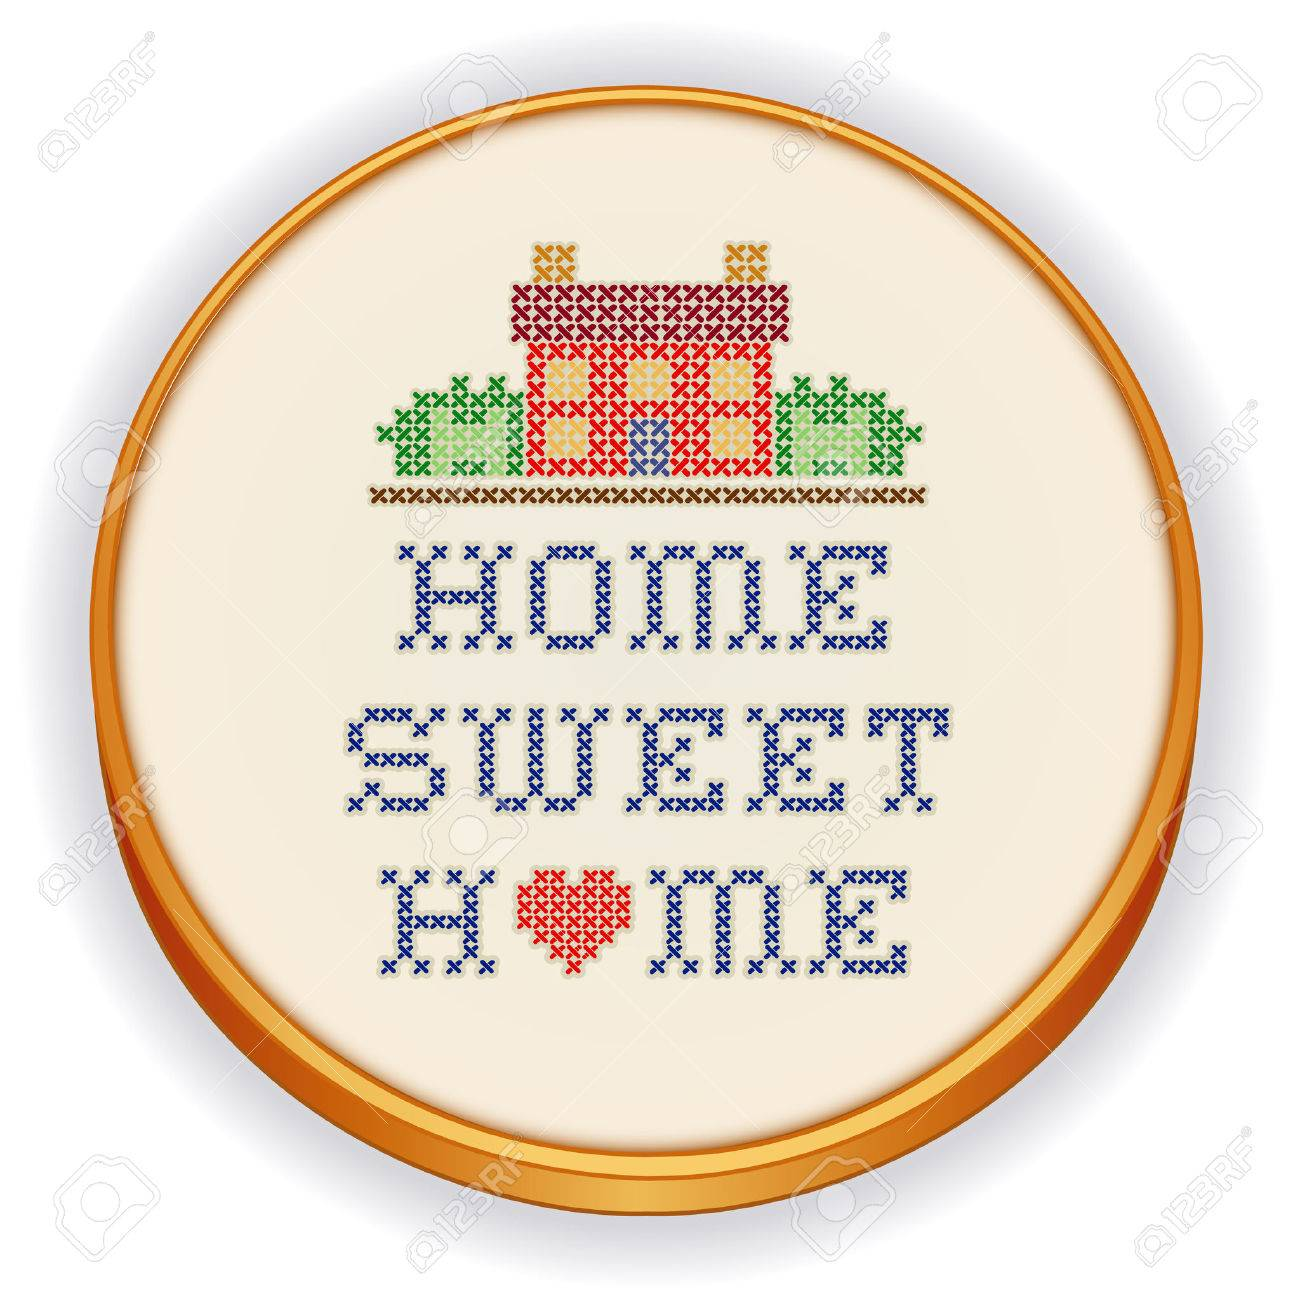 Embroidery Home Sweet Home Big Red Heart Decorative Cross